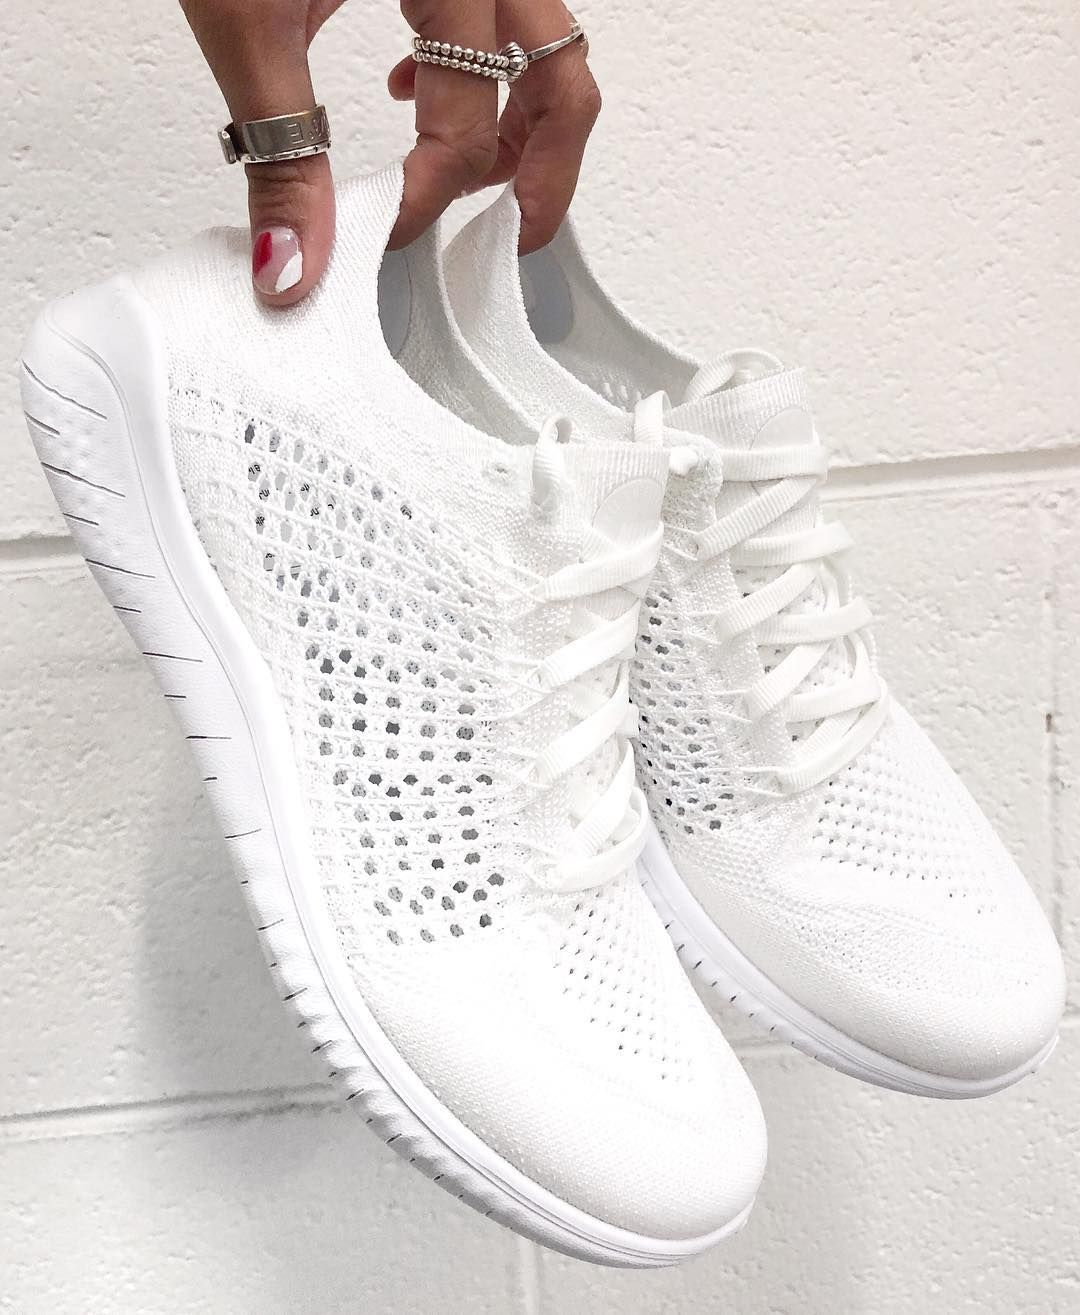 508621413499 We take a closer look at the stunning new Nike Free RN Flyknit 2018 Women s  Running Shoe in all white. It is the lightest trainer in the Nike Free RN  family ...